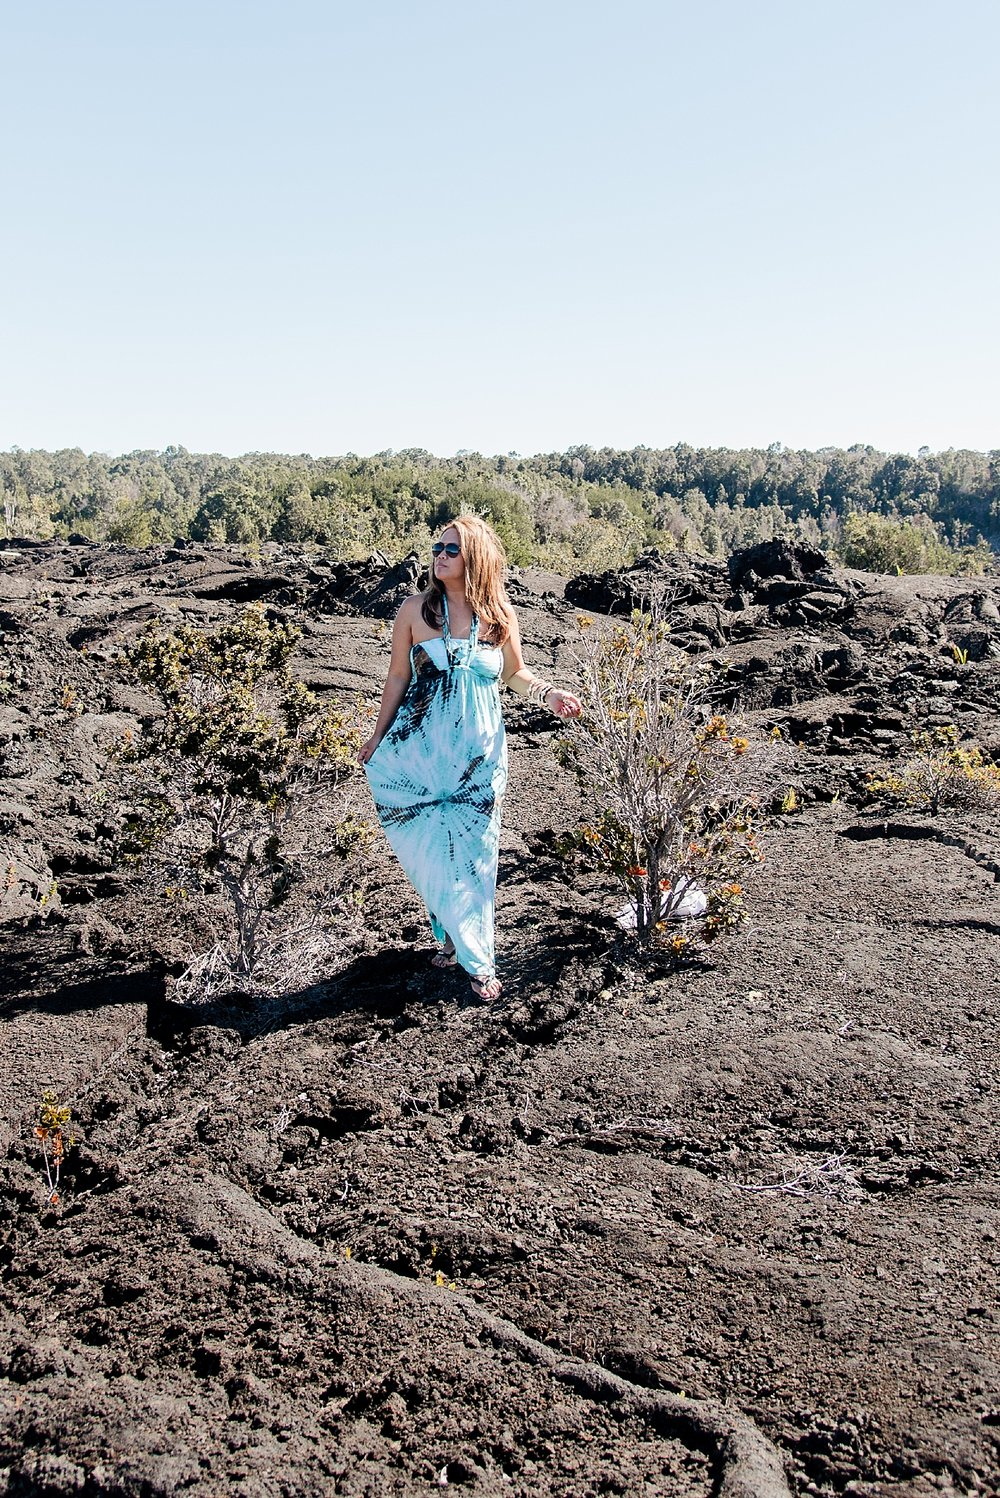 It felt surreal to walk over the cooled lava from past eruptions. -